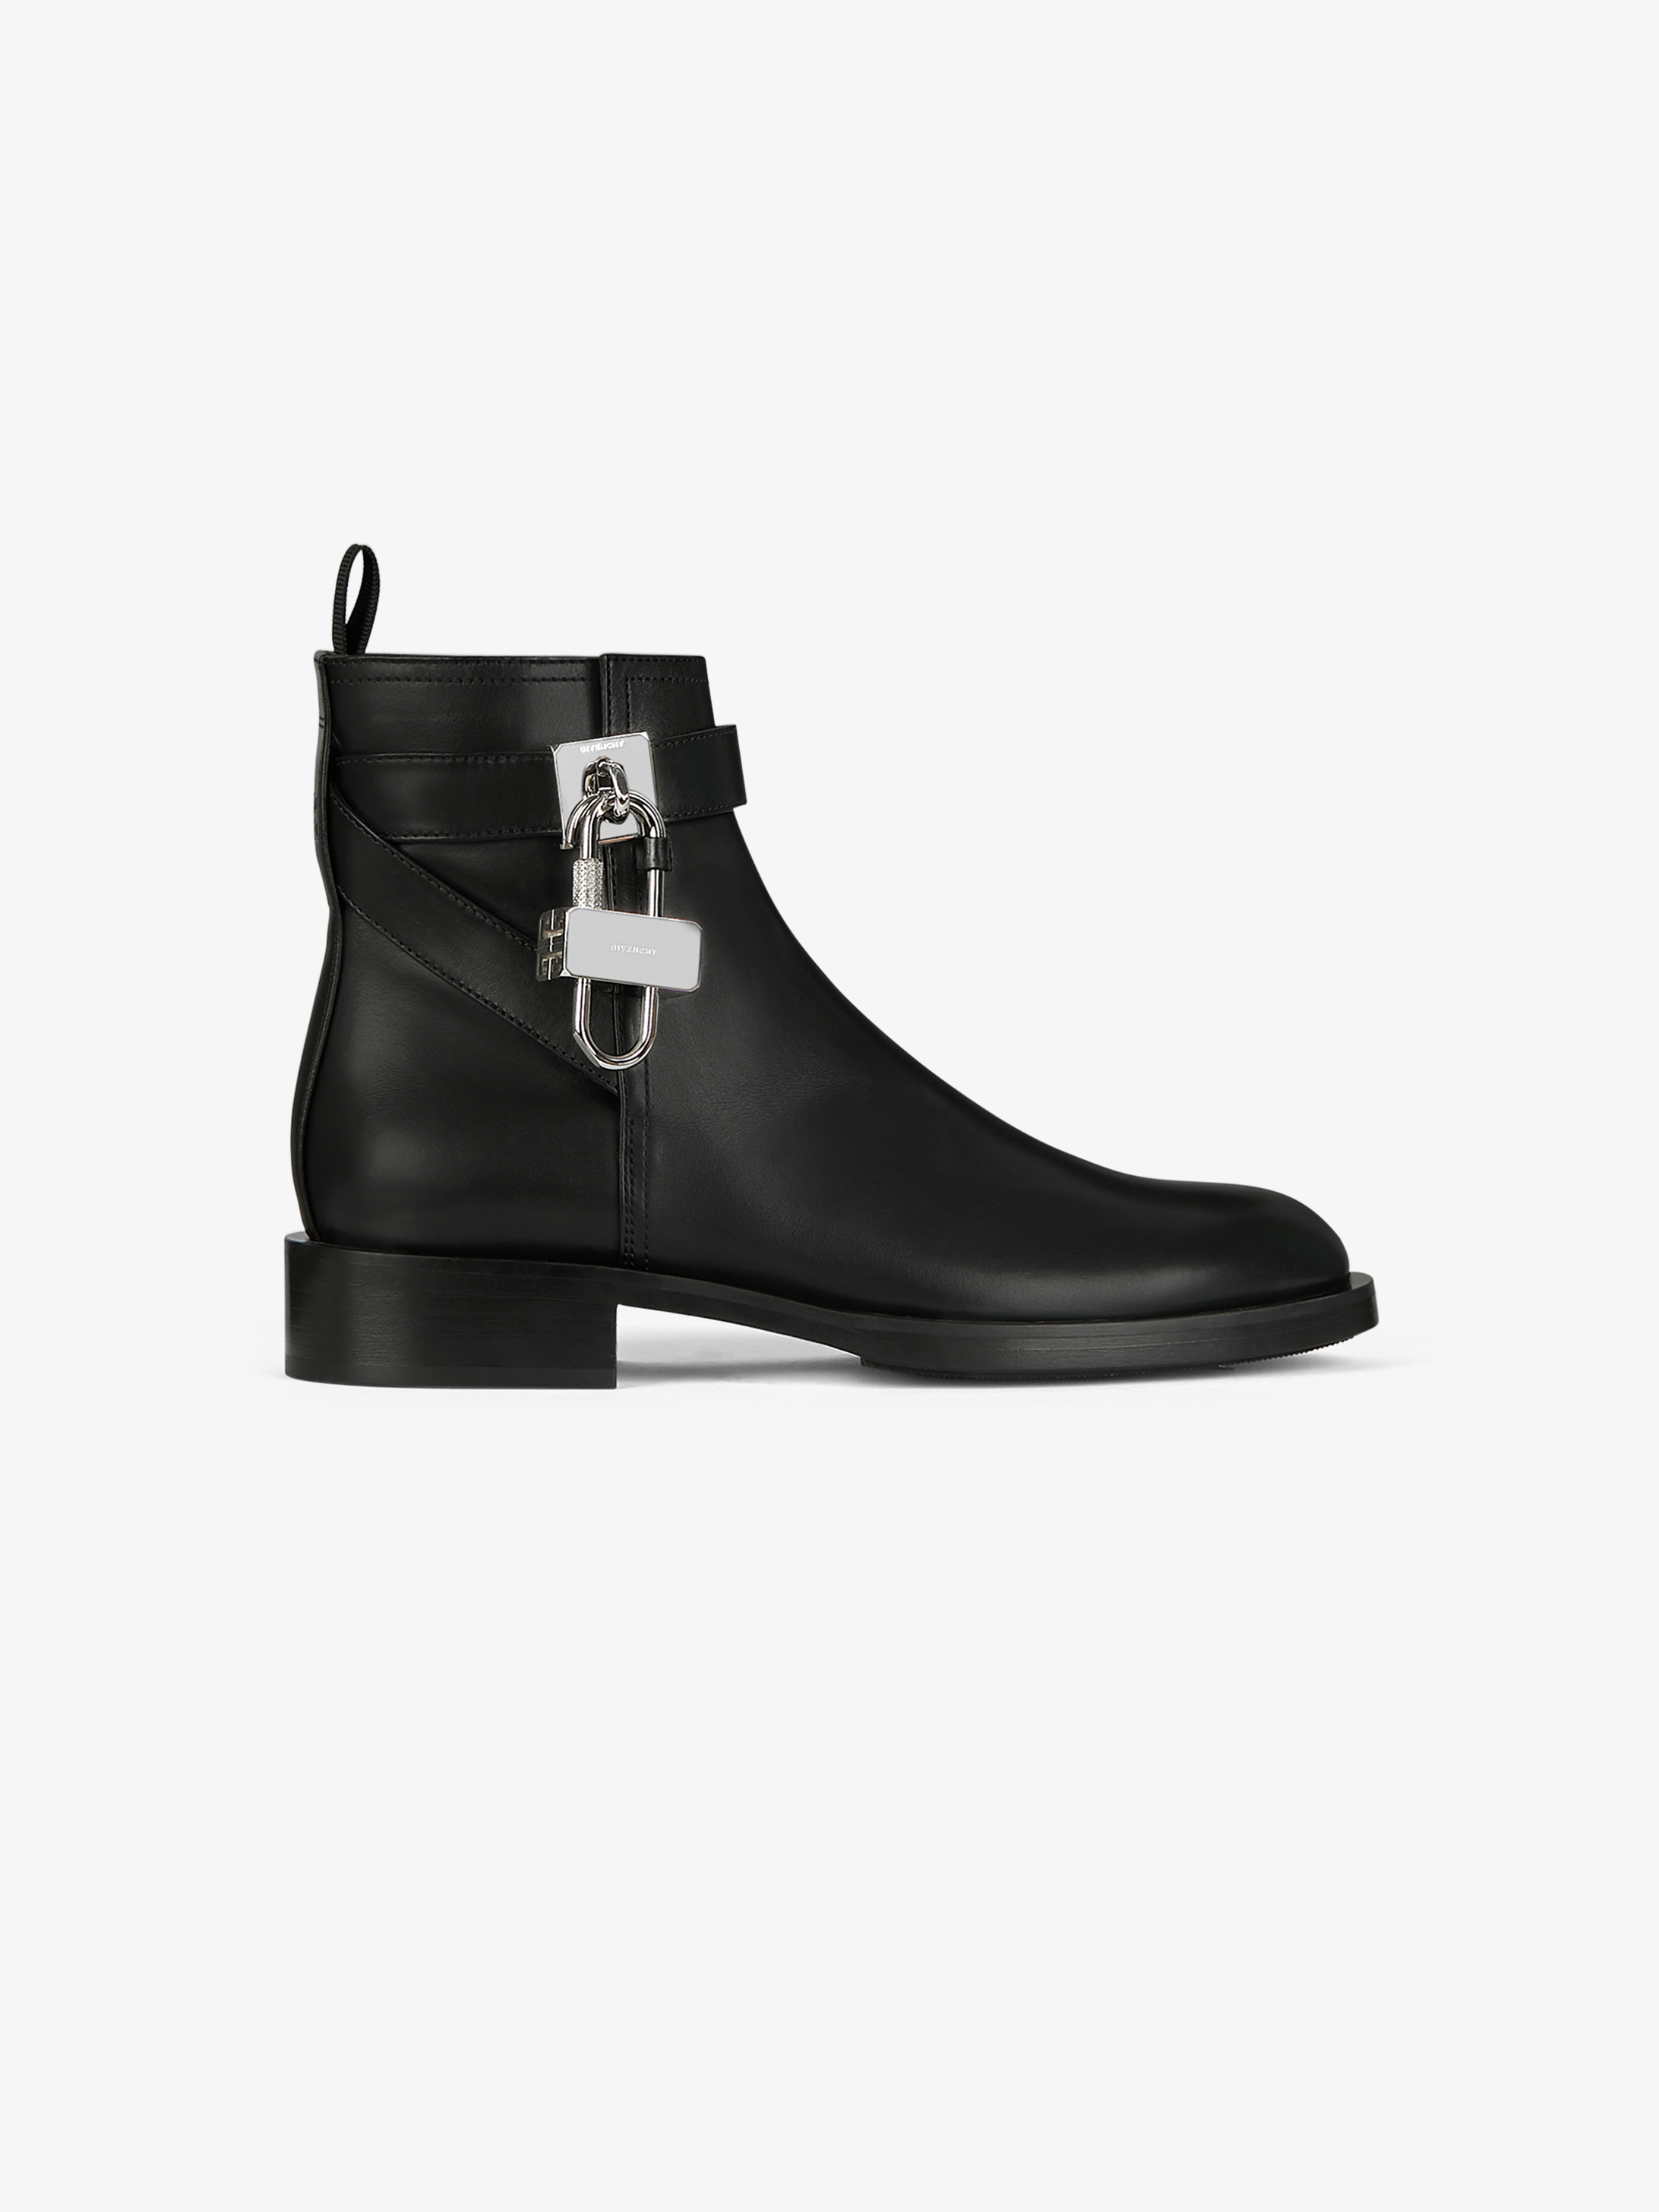 Boots in leather with padlock